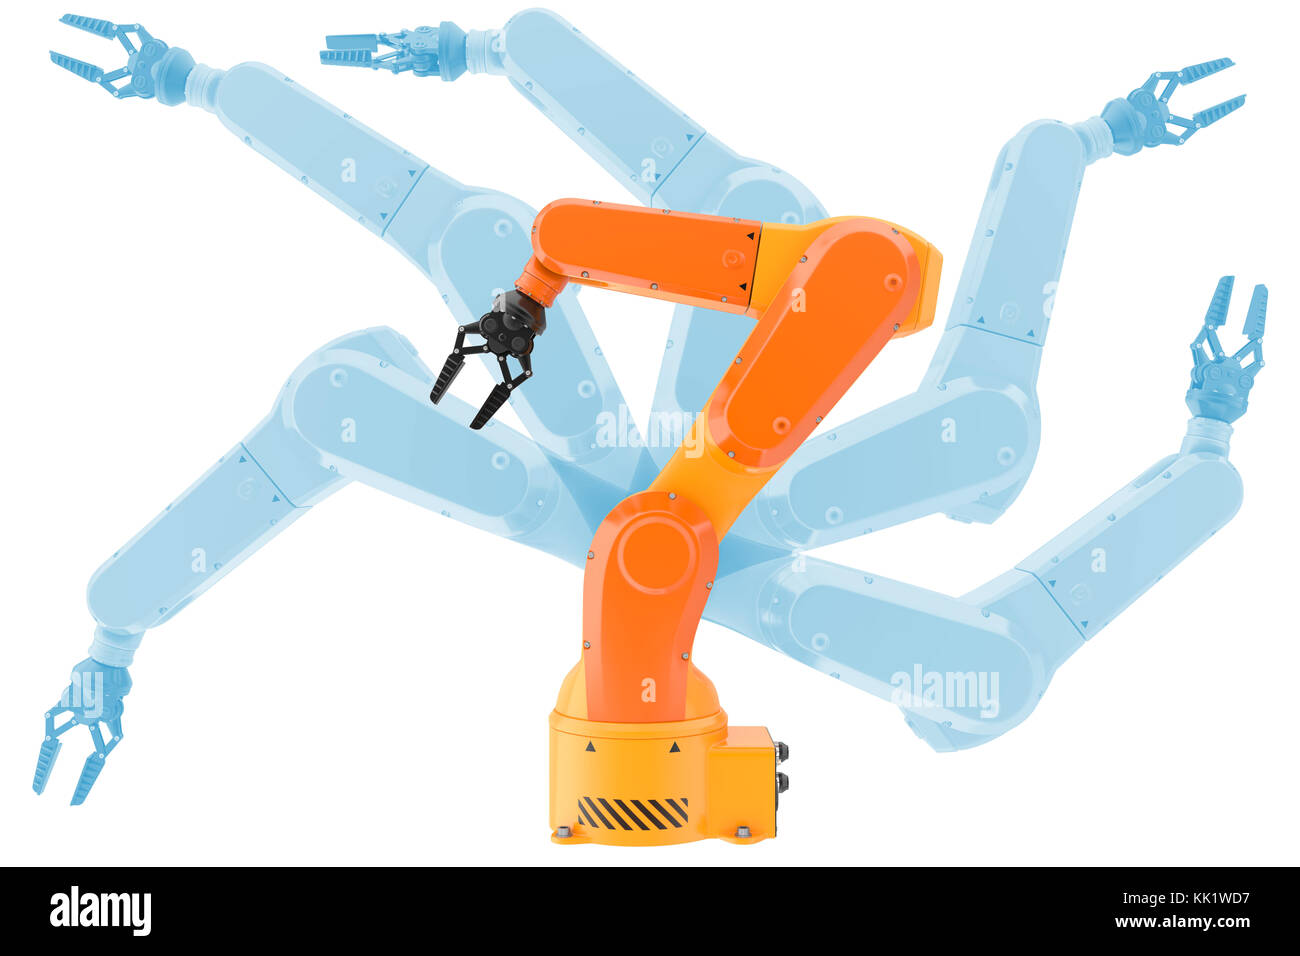 Industrial robot arms possibilities. 3d illustration - Stock Image